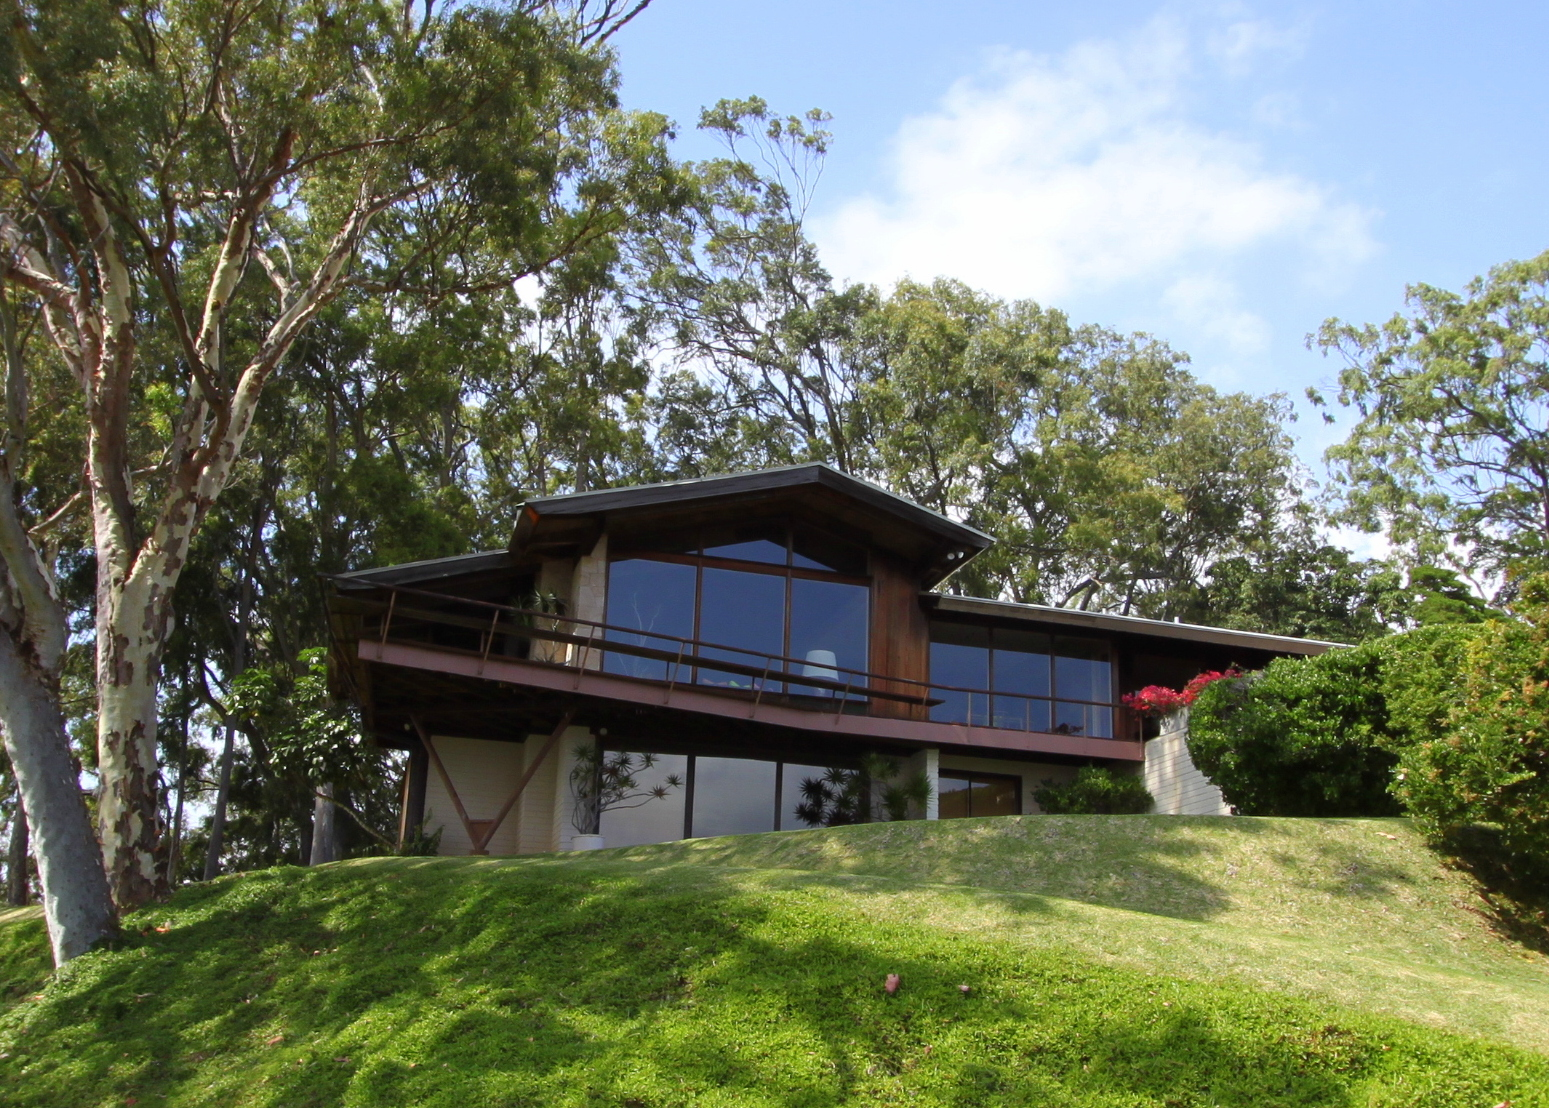 The liljestrand house by ossipoff in hawaii the amazing for Modern homes hawaii